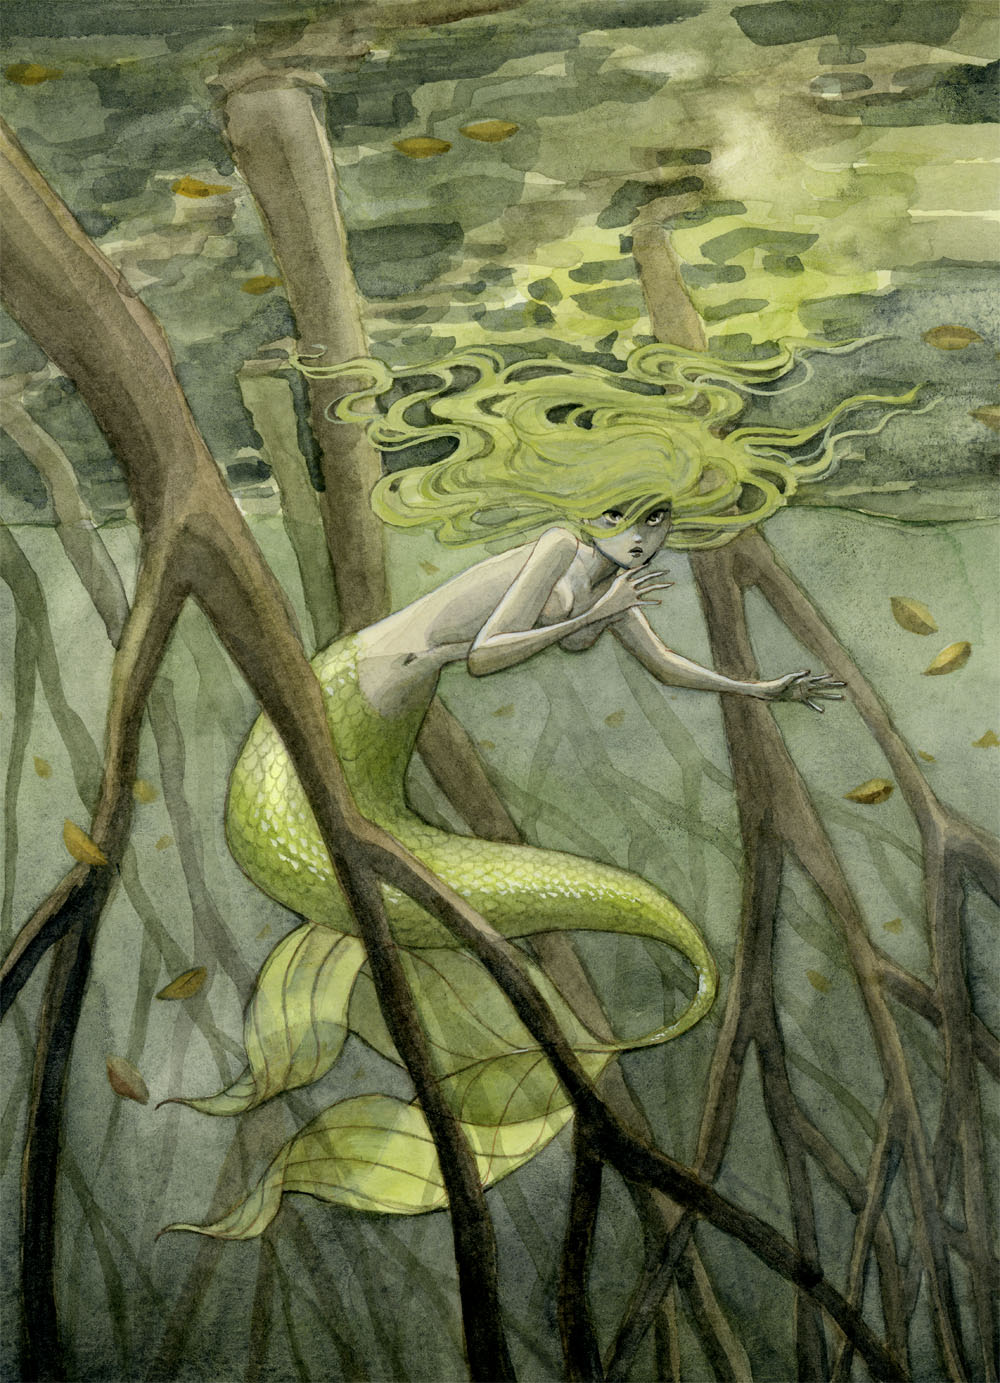 Mangrove Swamp Mermaid by reneenault